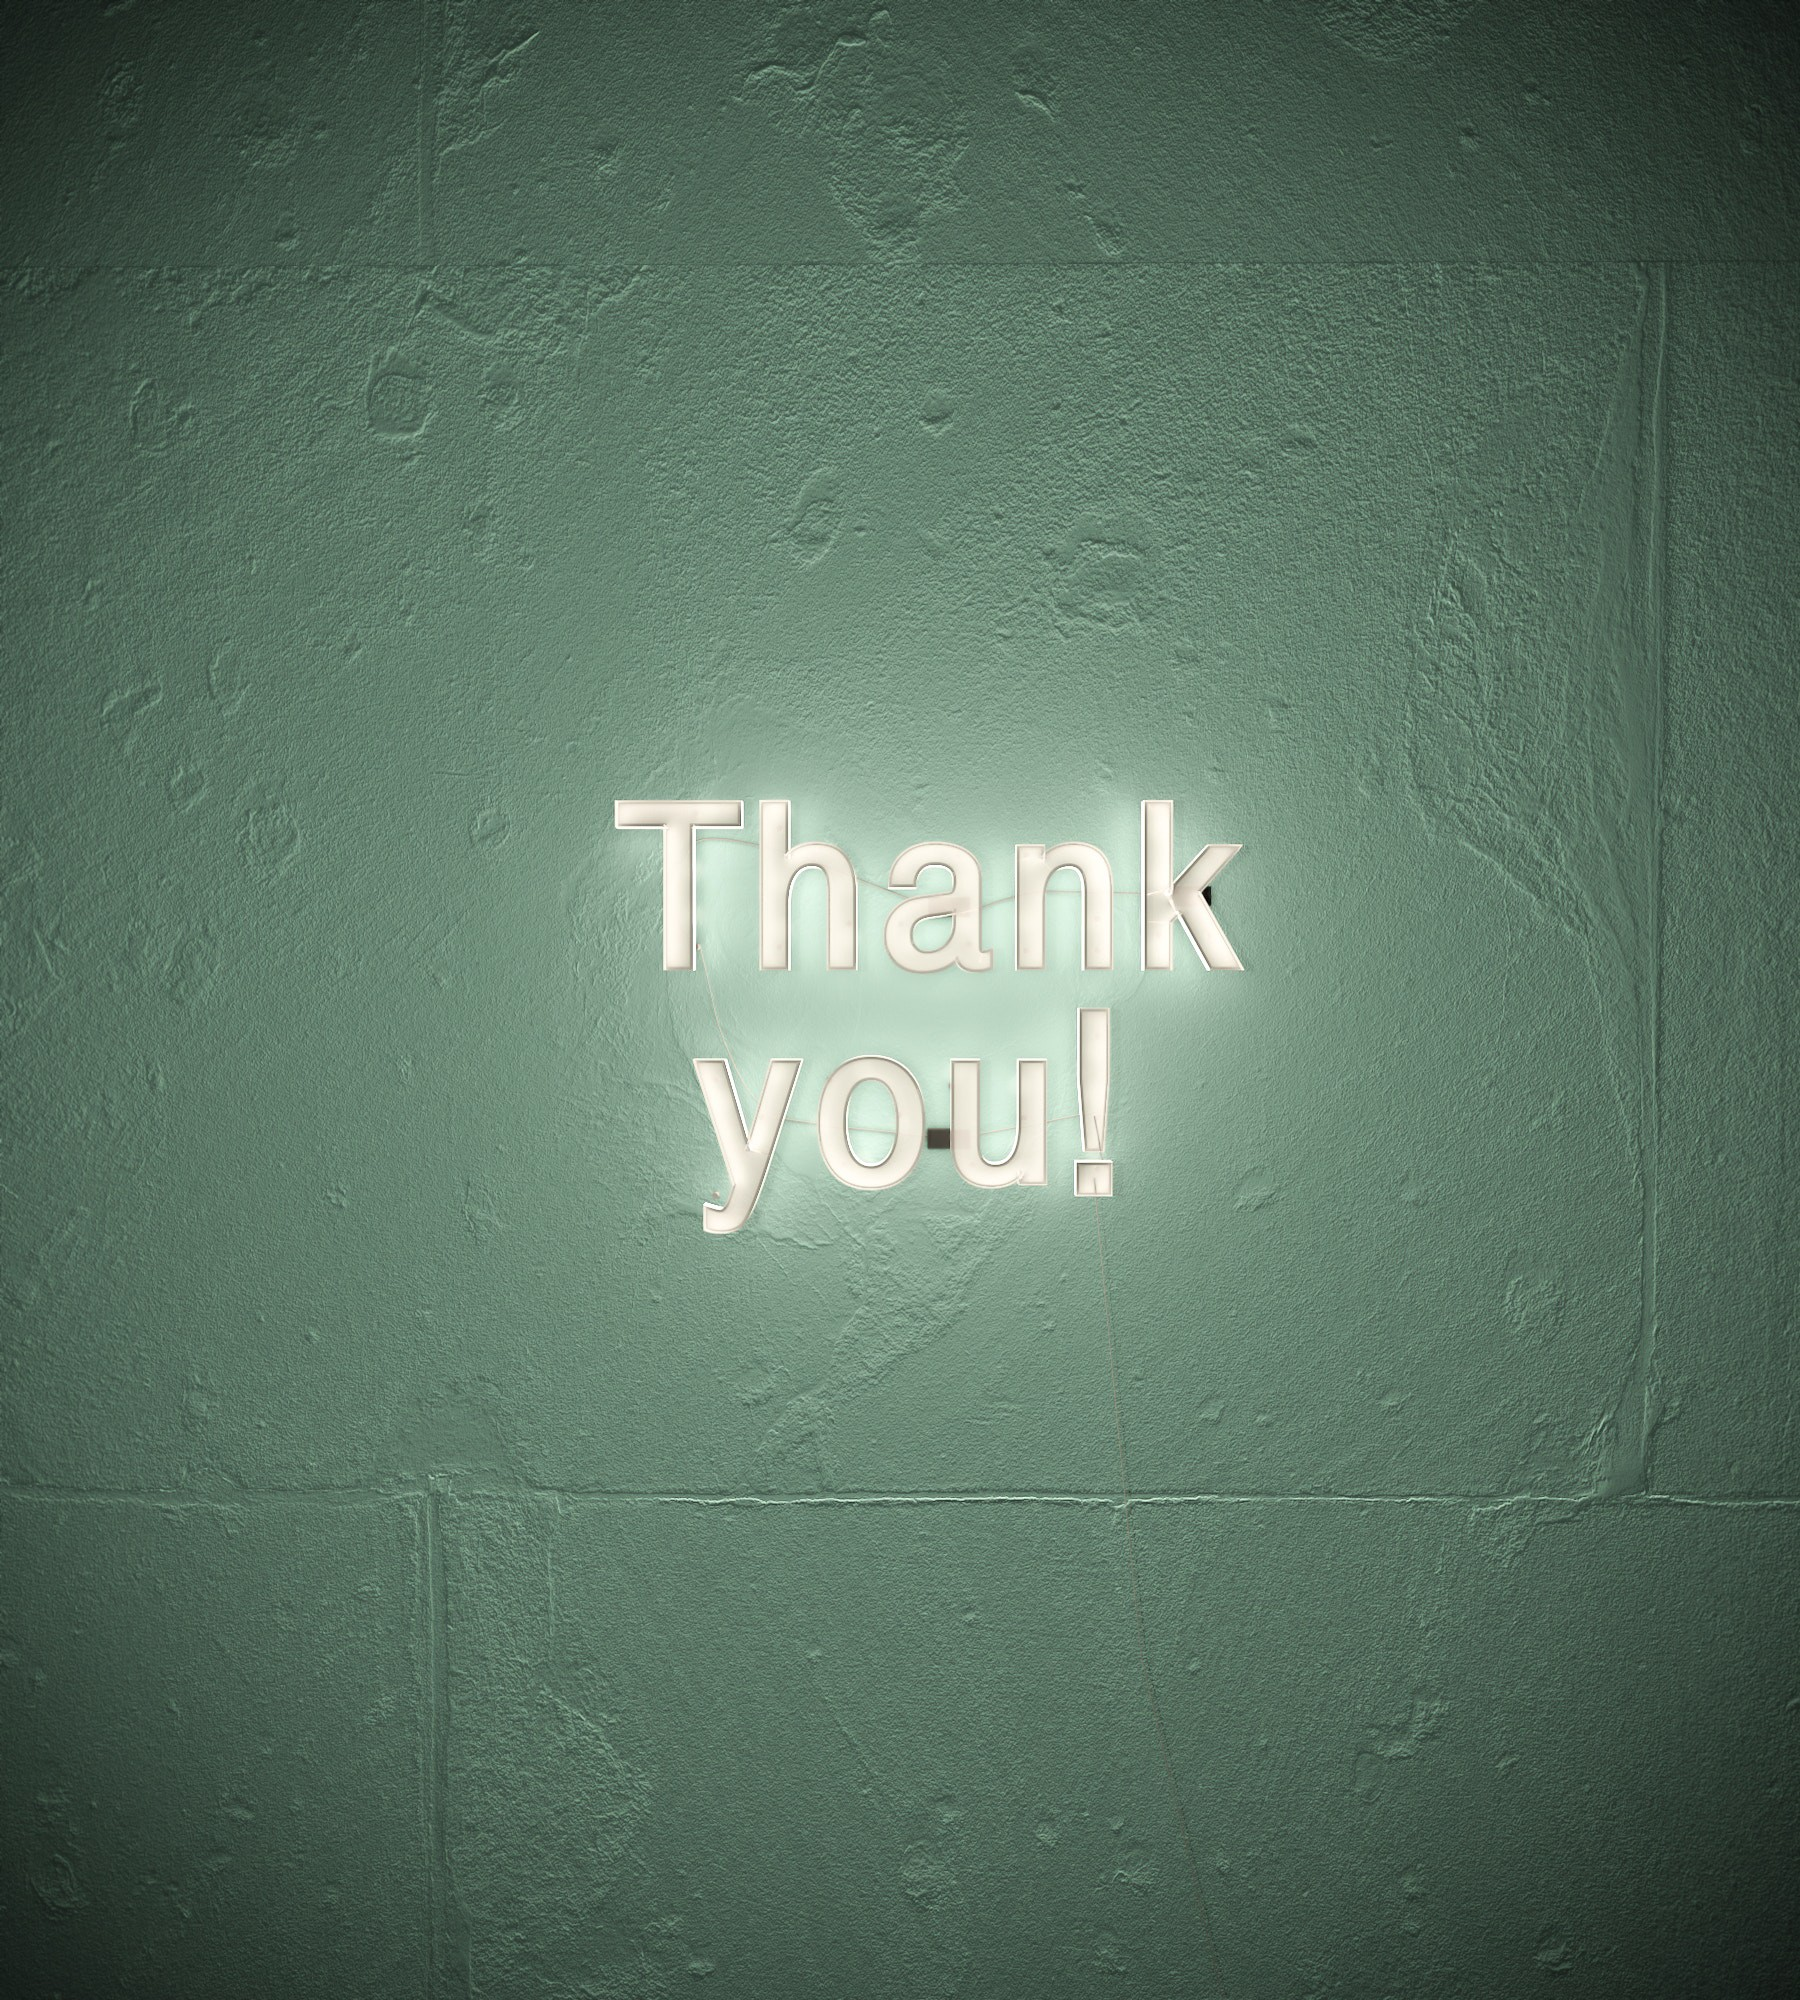 Image says Thank You in neon letters